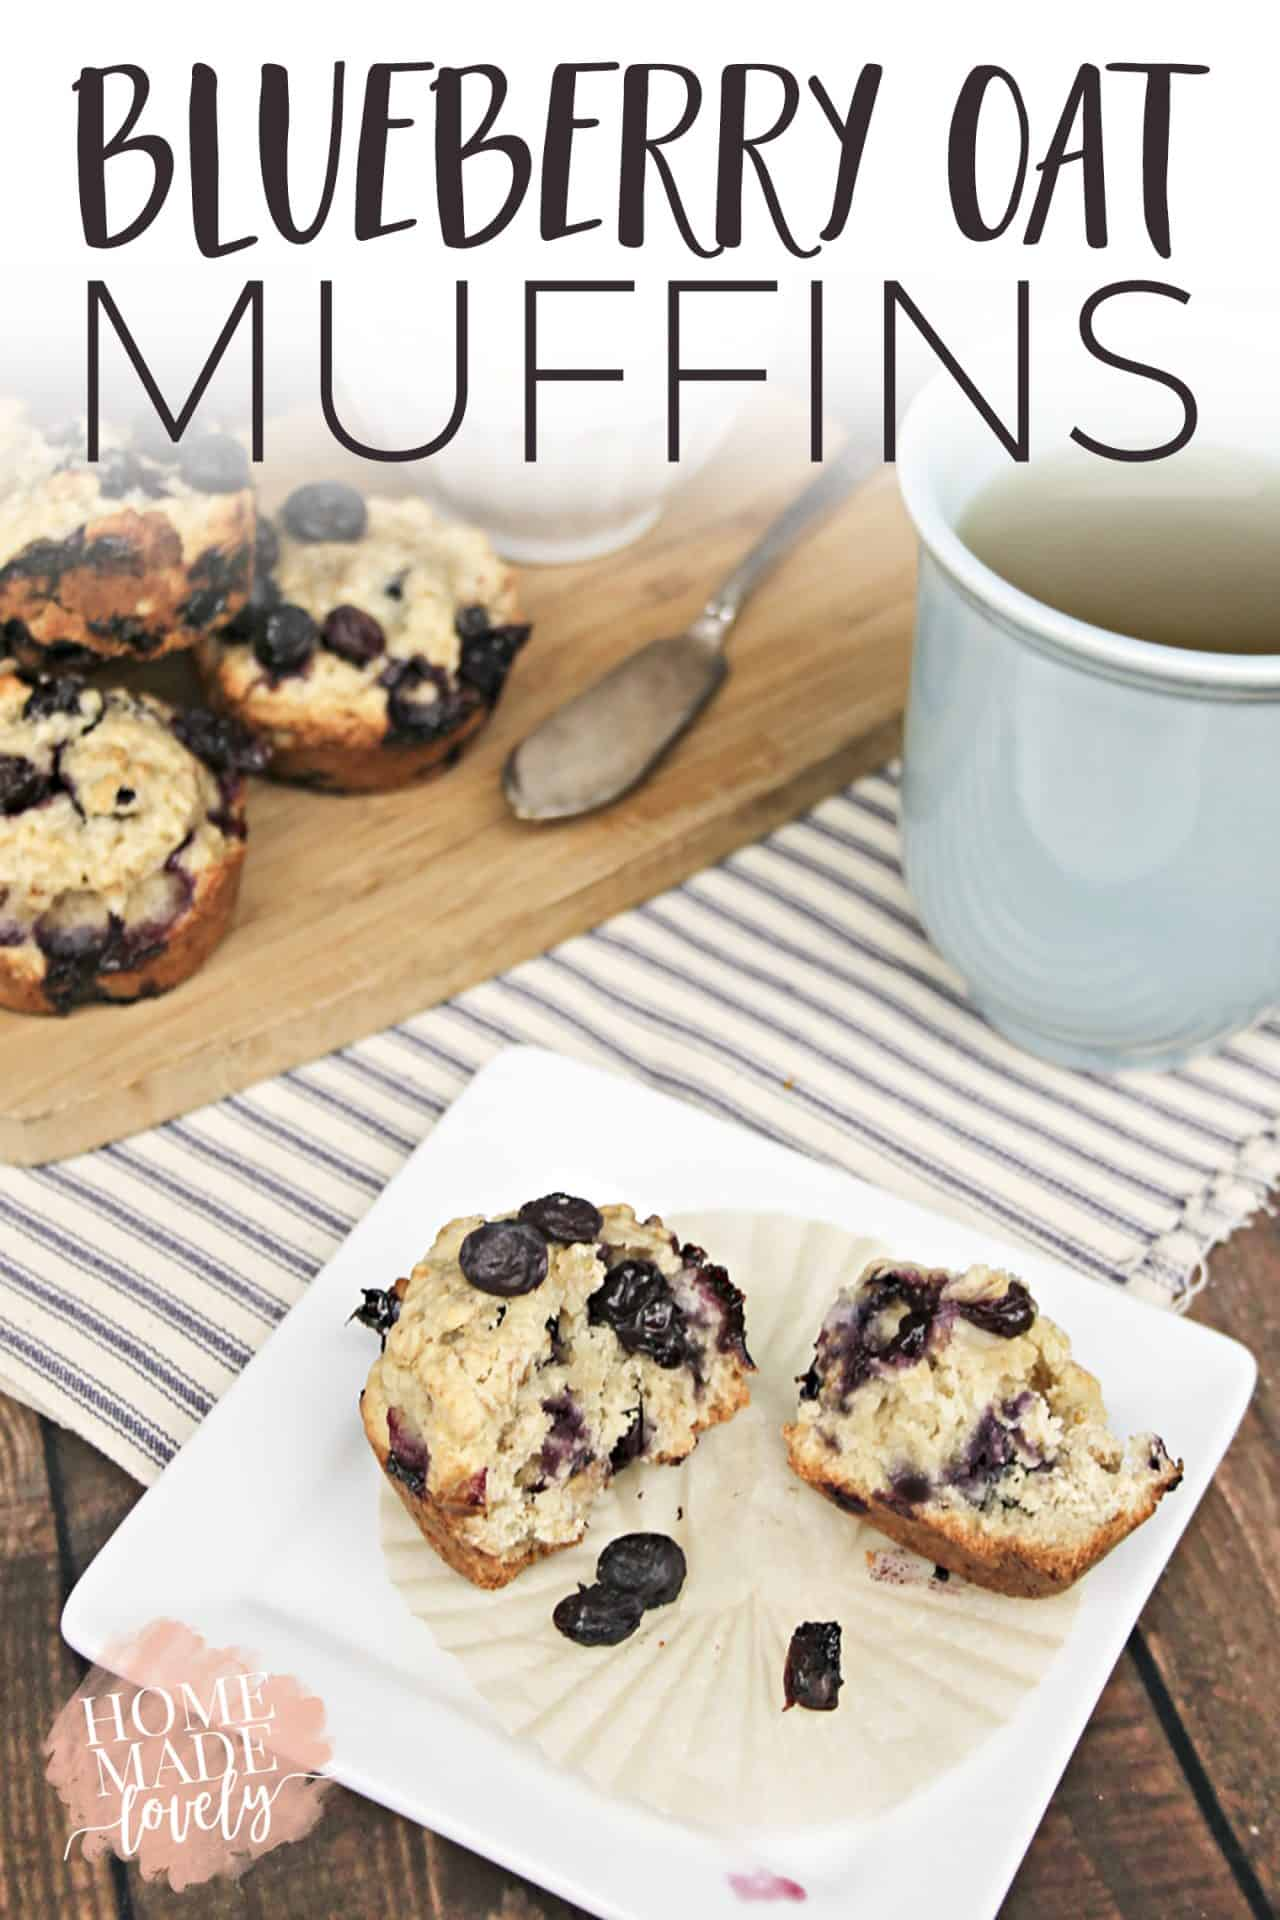 Make these yummy, family-favorite blueberry oat muffins for breakfast or a quick snack!